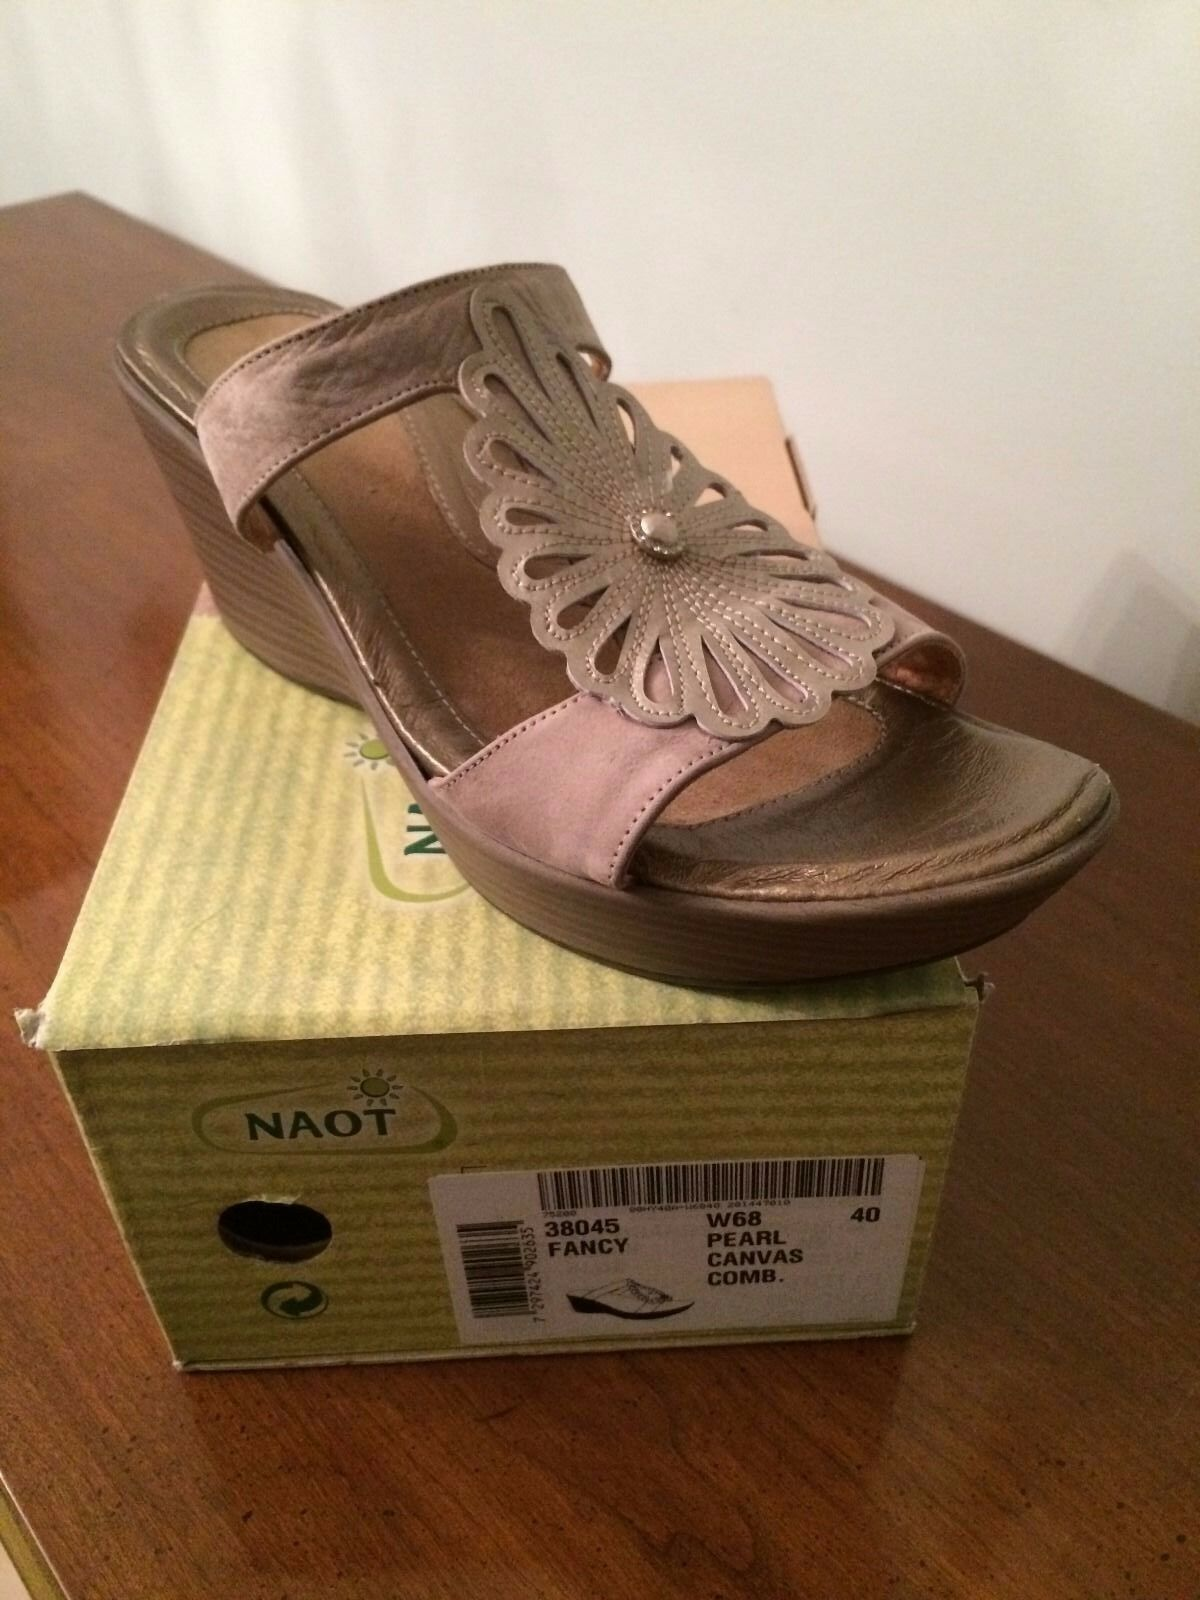 Naot Donna    Wedge Sandals, 38045 Fancy, Pearl Canvas Combination 670a3d